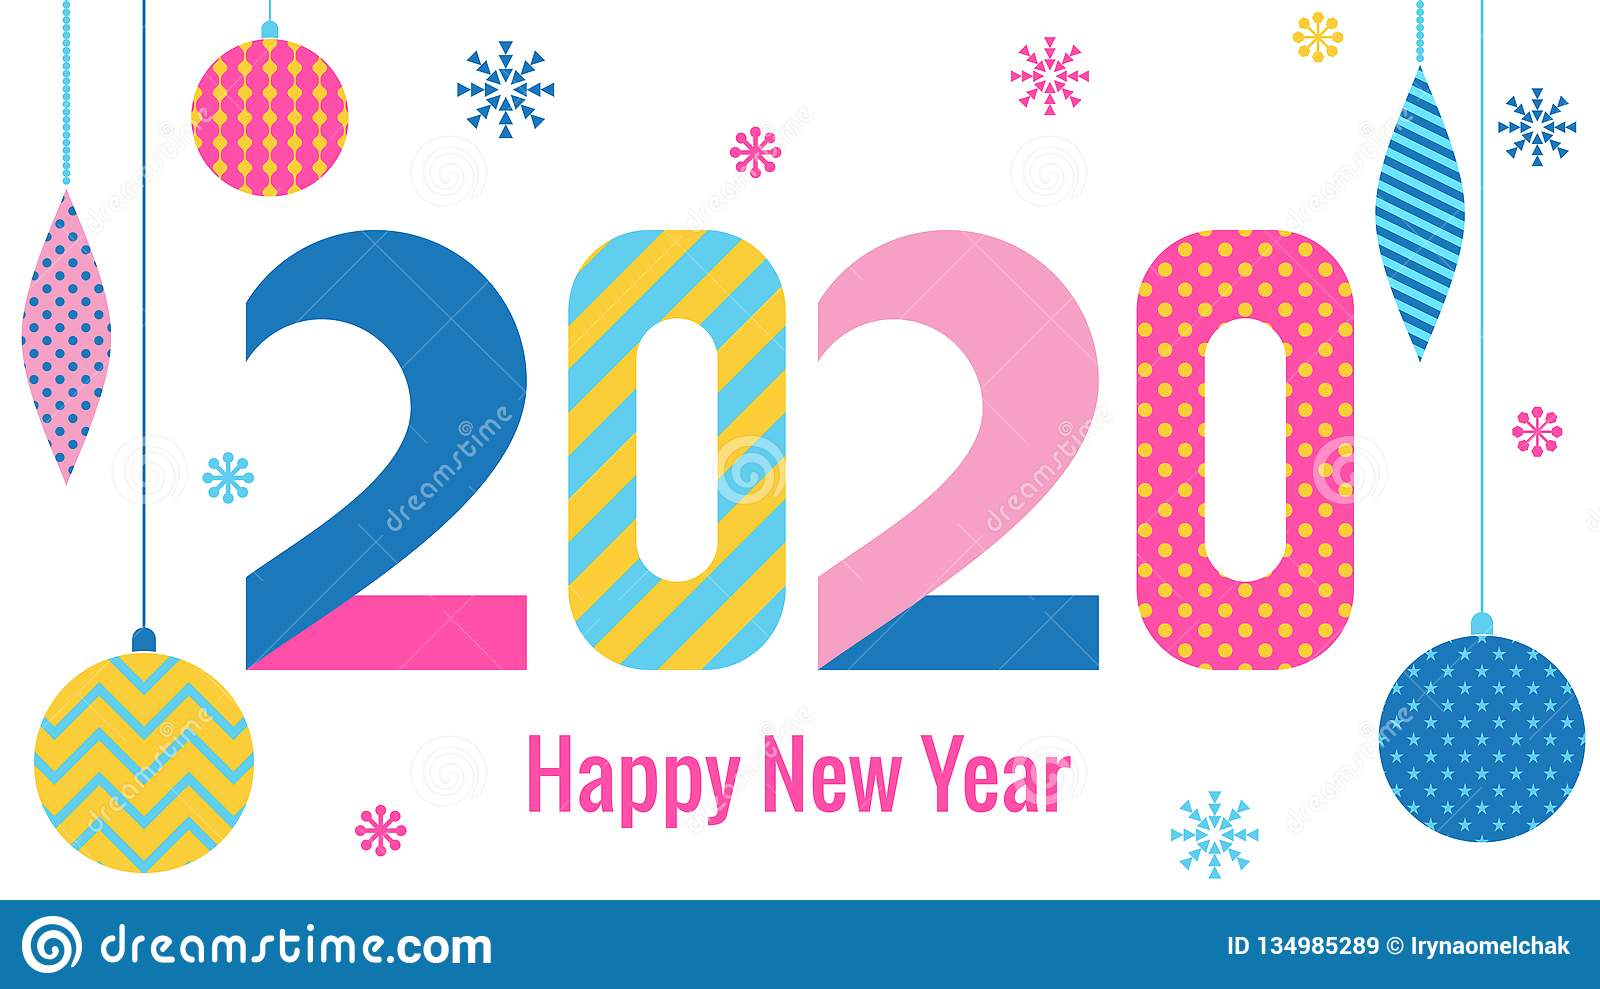 New Years Cards 2020 Stylish Greeting Card. Happy New Year 2020. Trendy Geometric Font